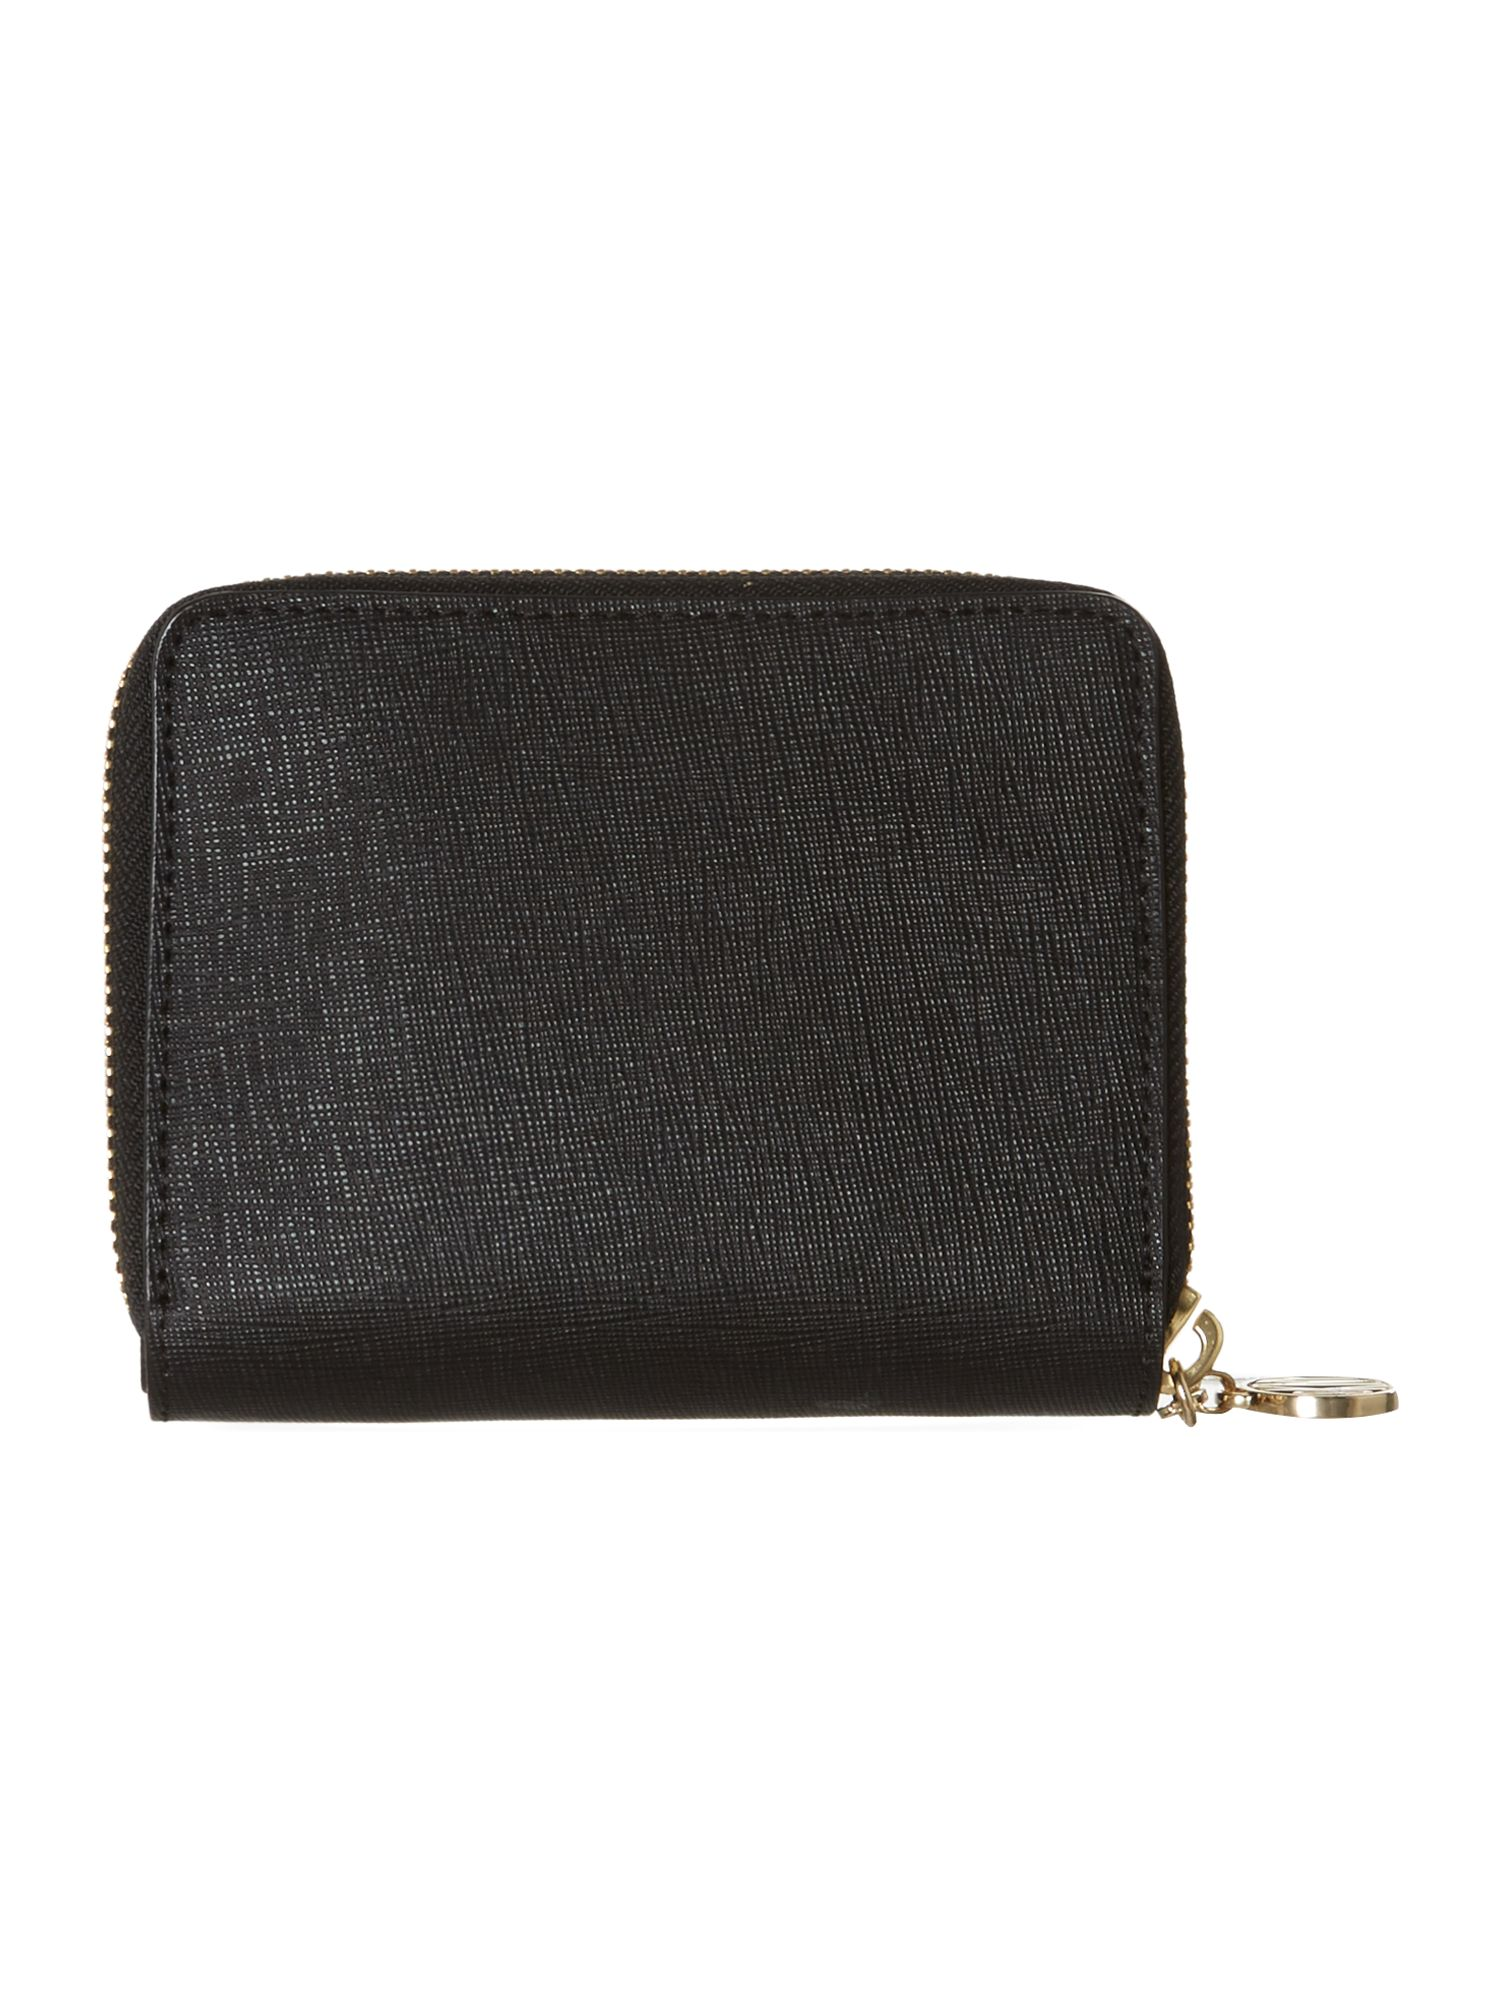 Saffiano black small zip around